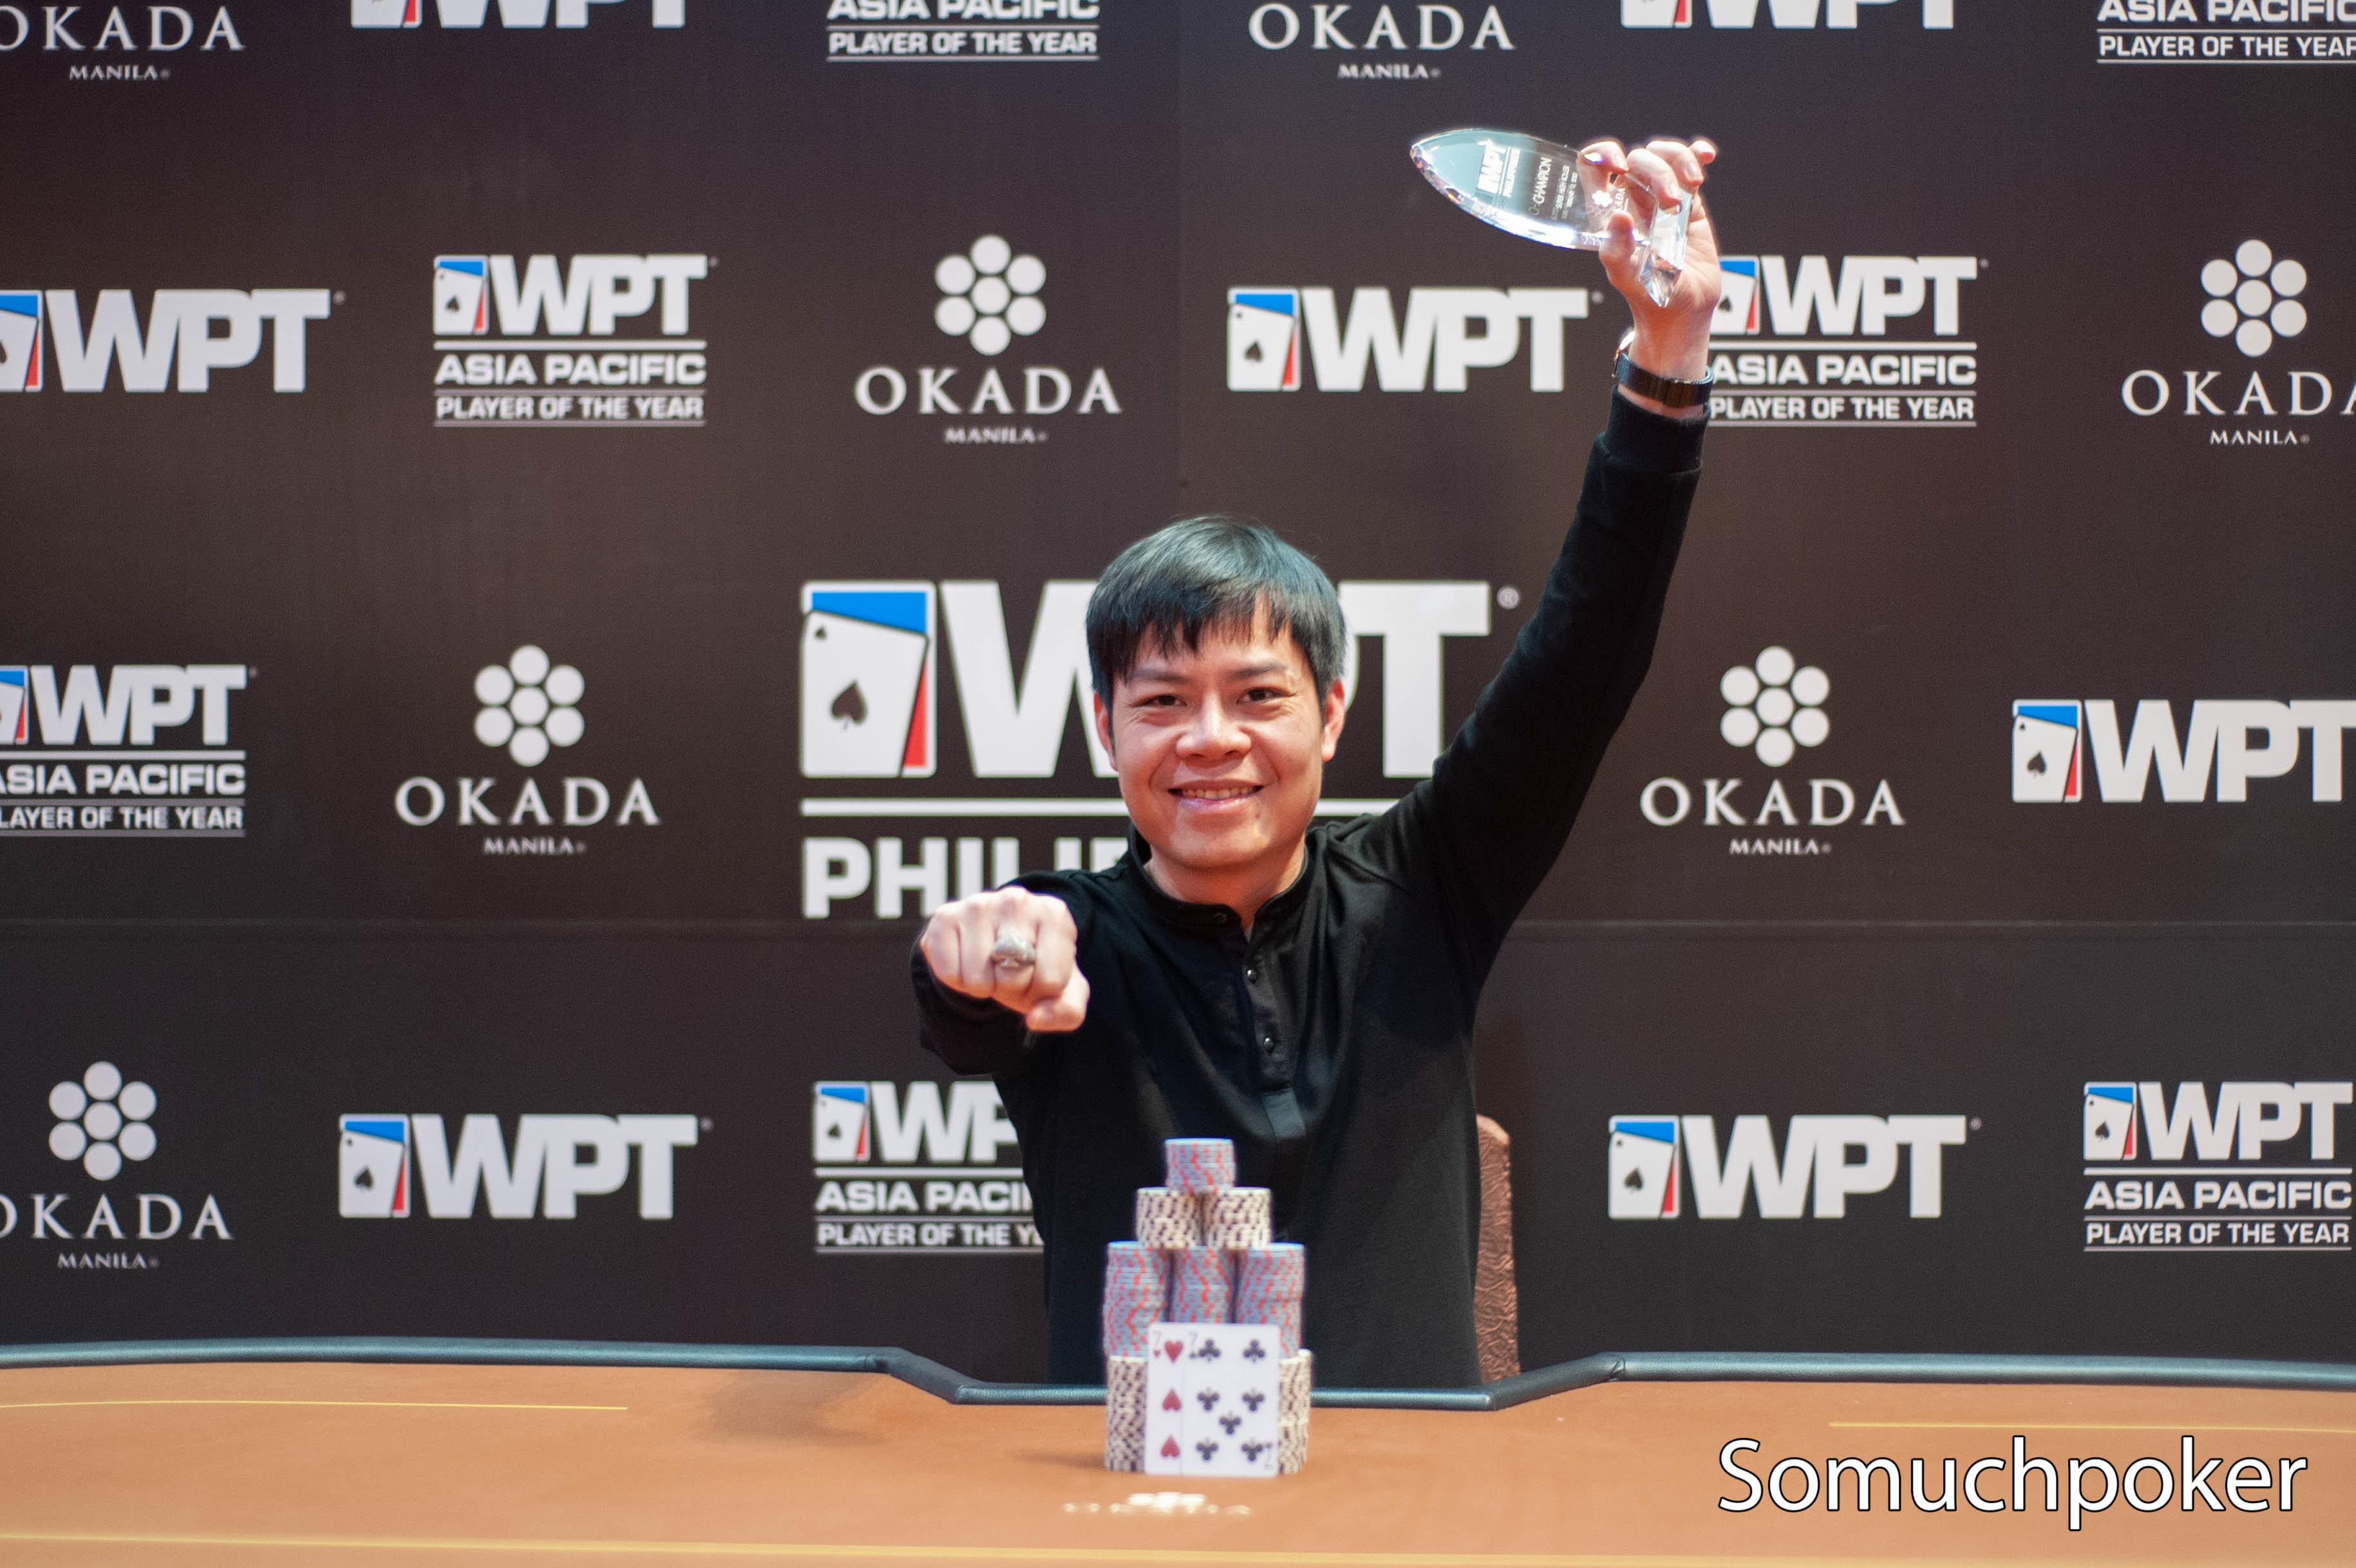 WPT Philippines: Cao Ngoc Anh crushes the Super High Roller; Mike Takayama wins the Single Day HR